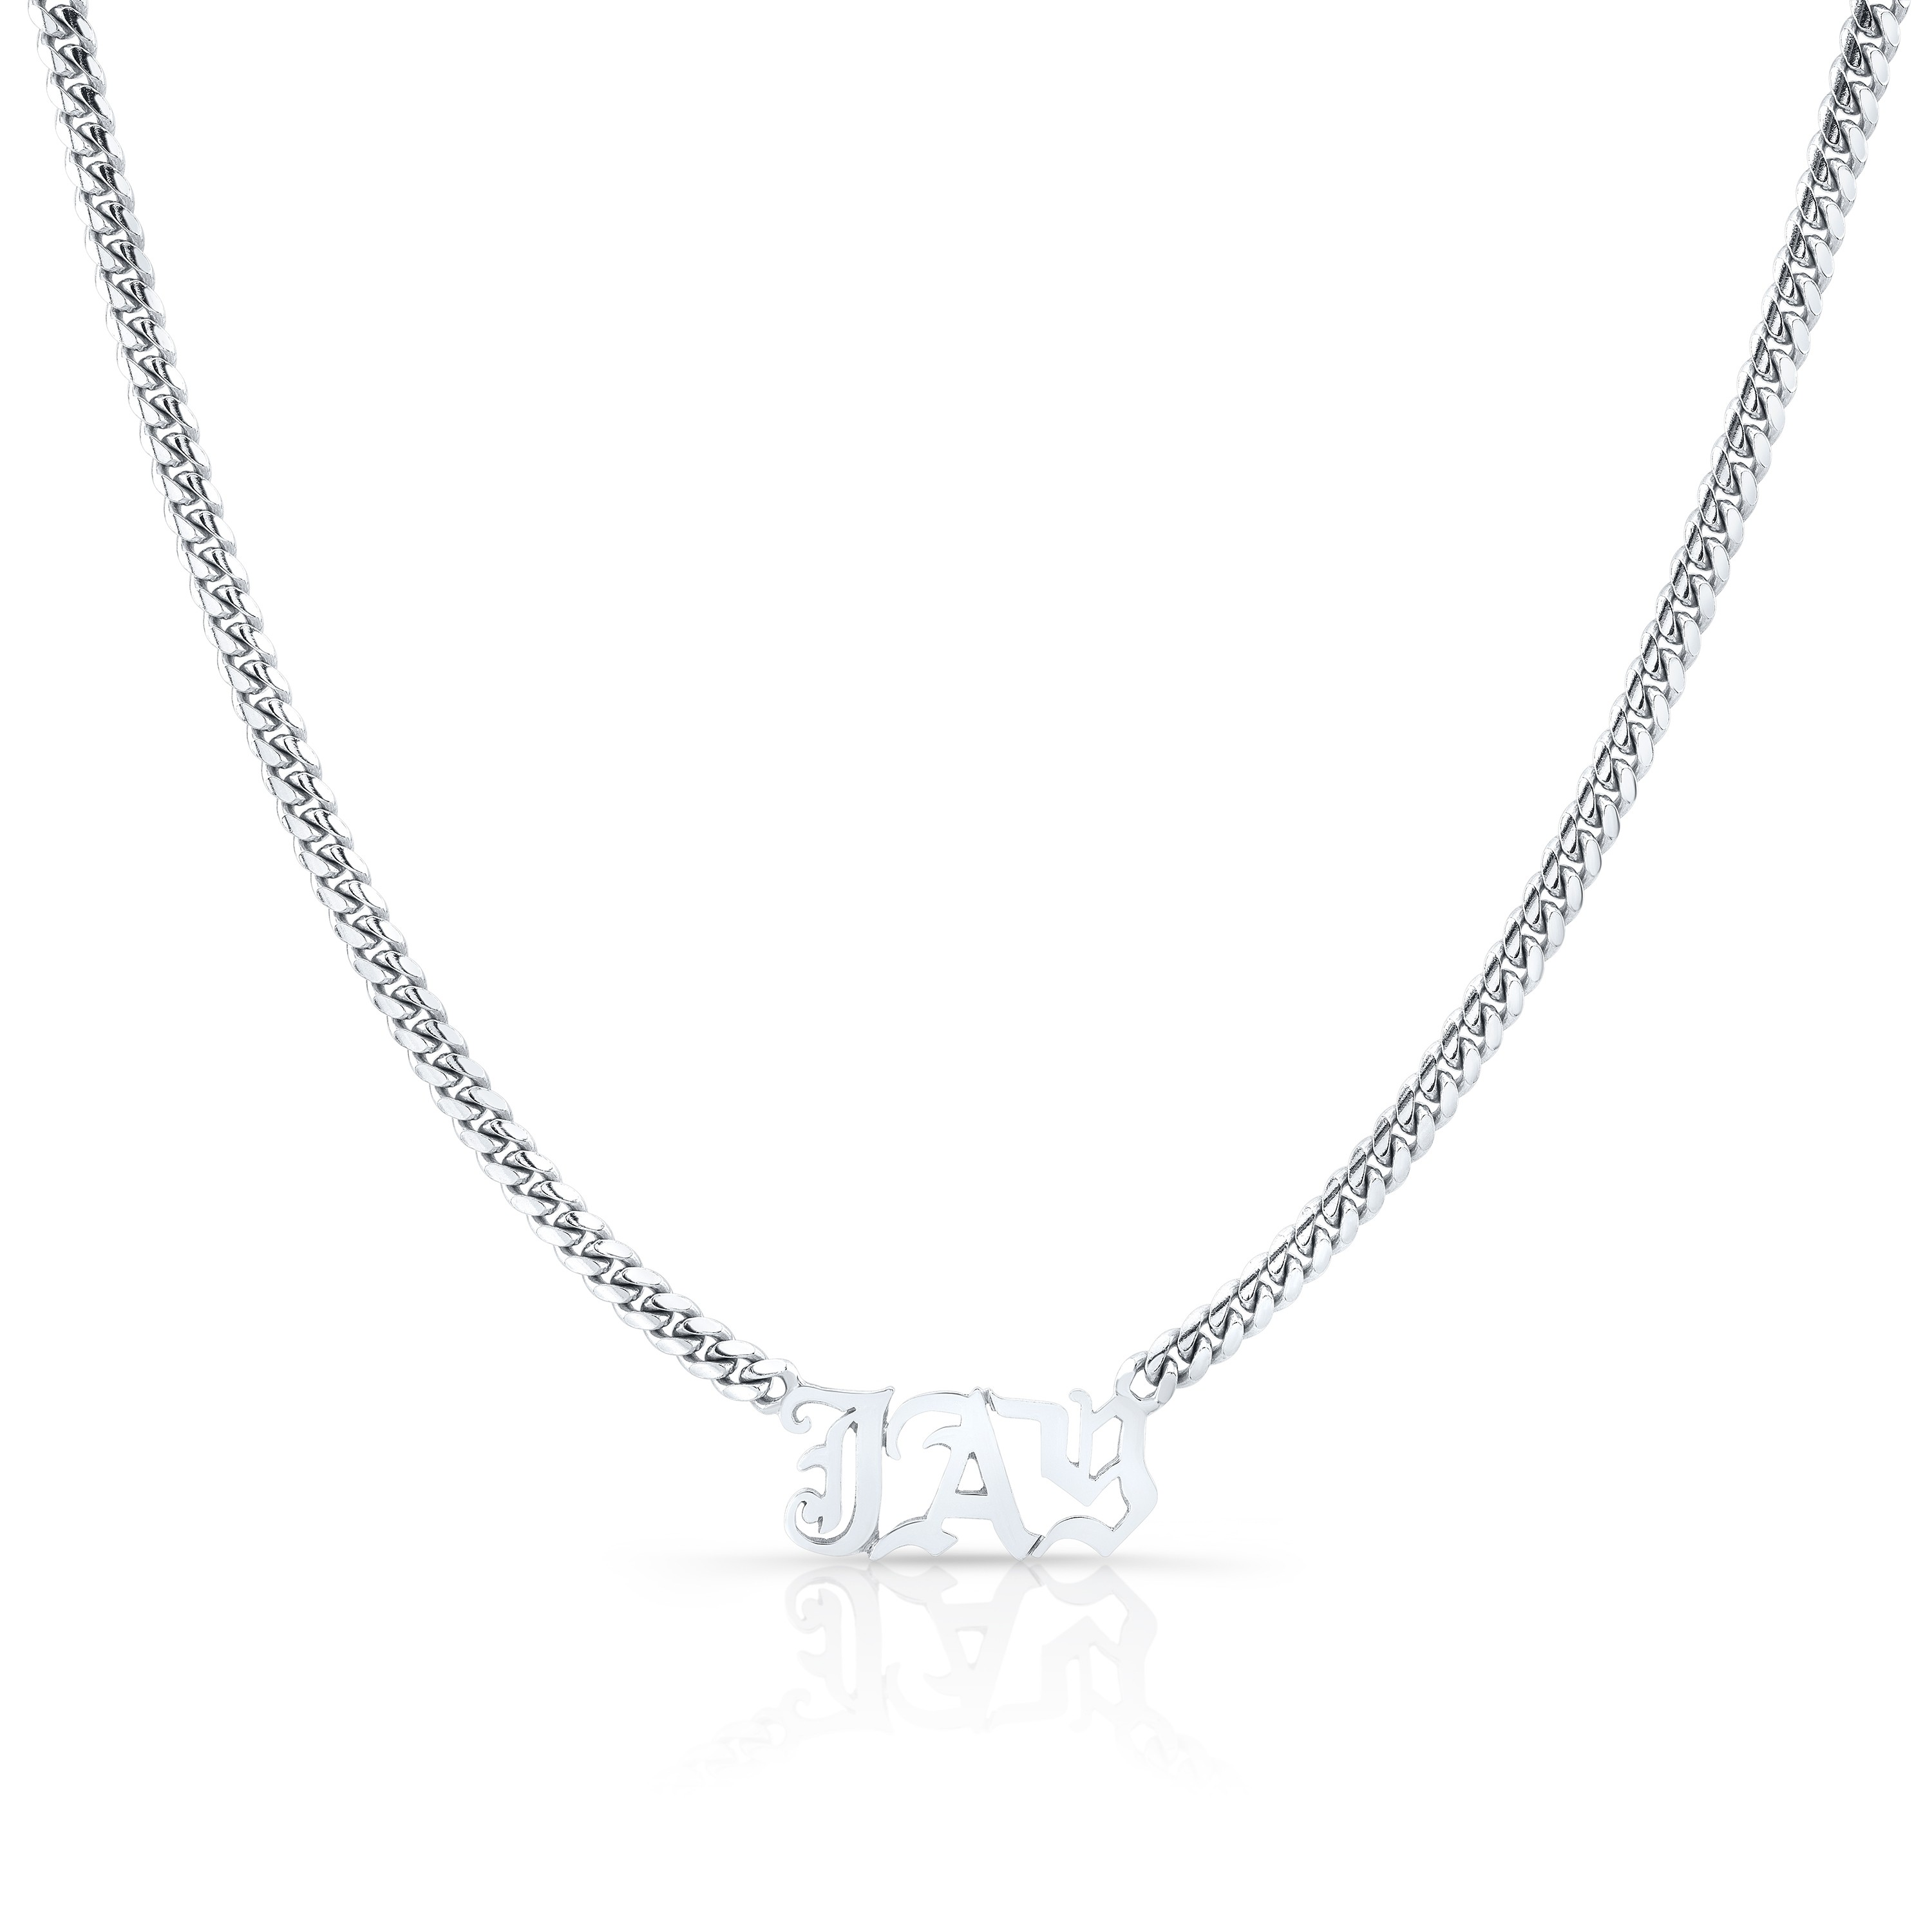 14k White Gold Cuban Link Personalized Necklace